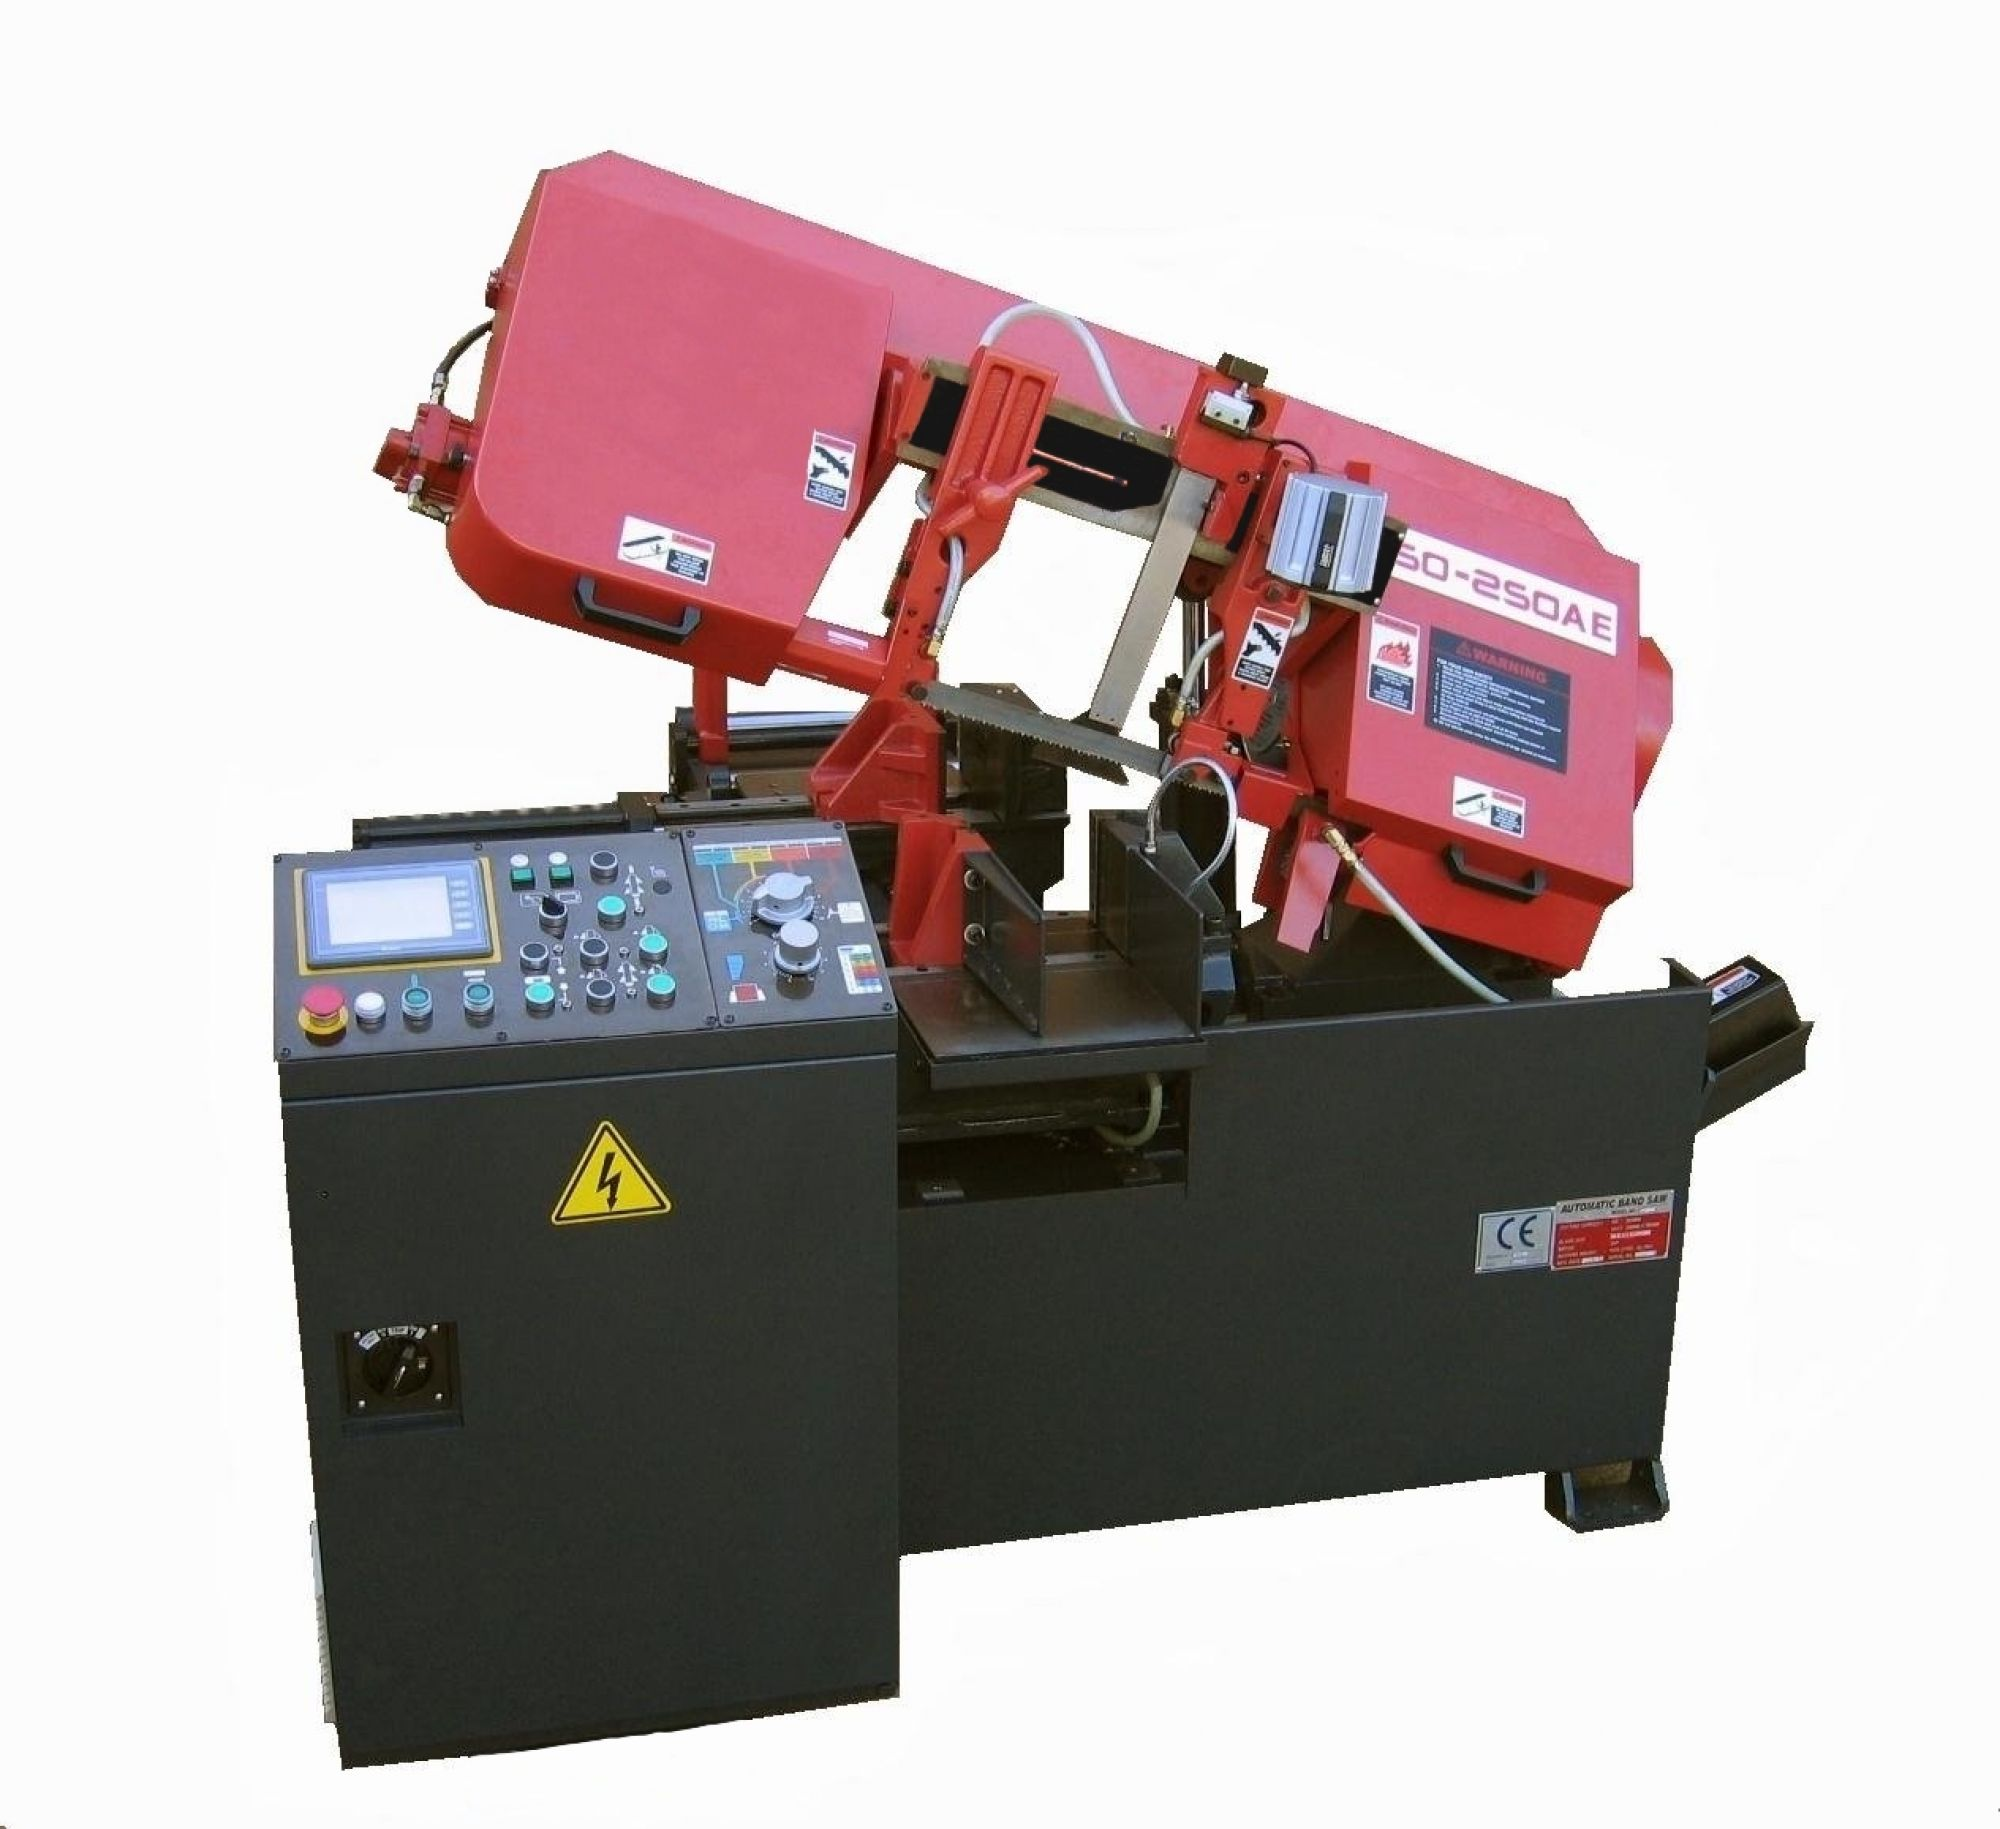 SD-250AE Heavy Duty Automatic Band saw